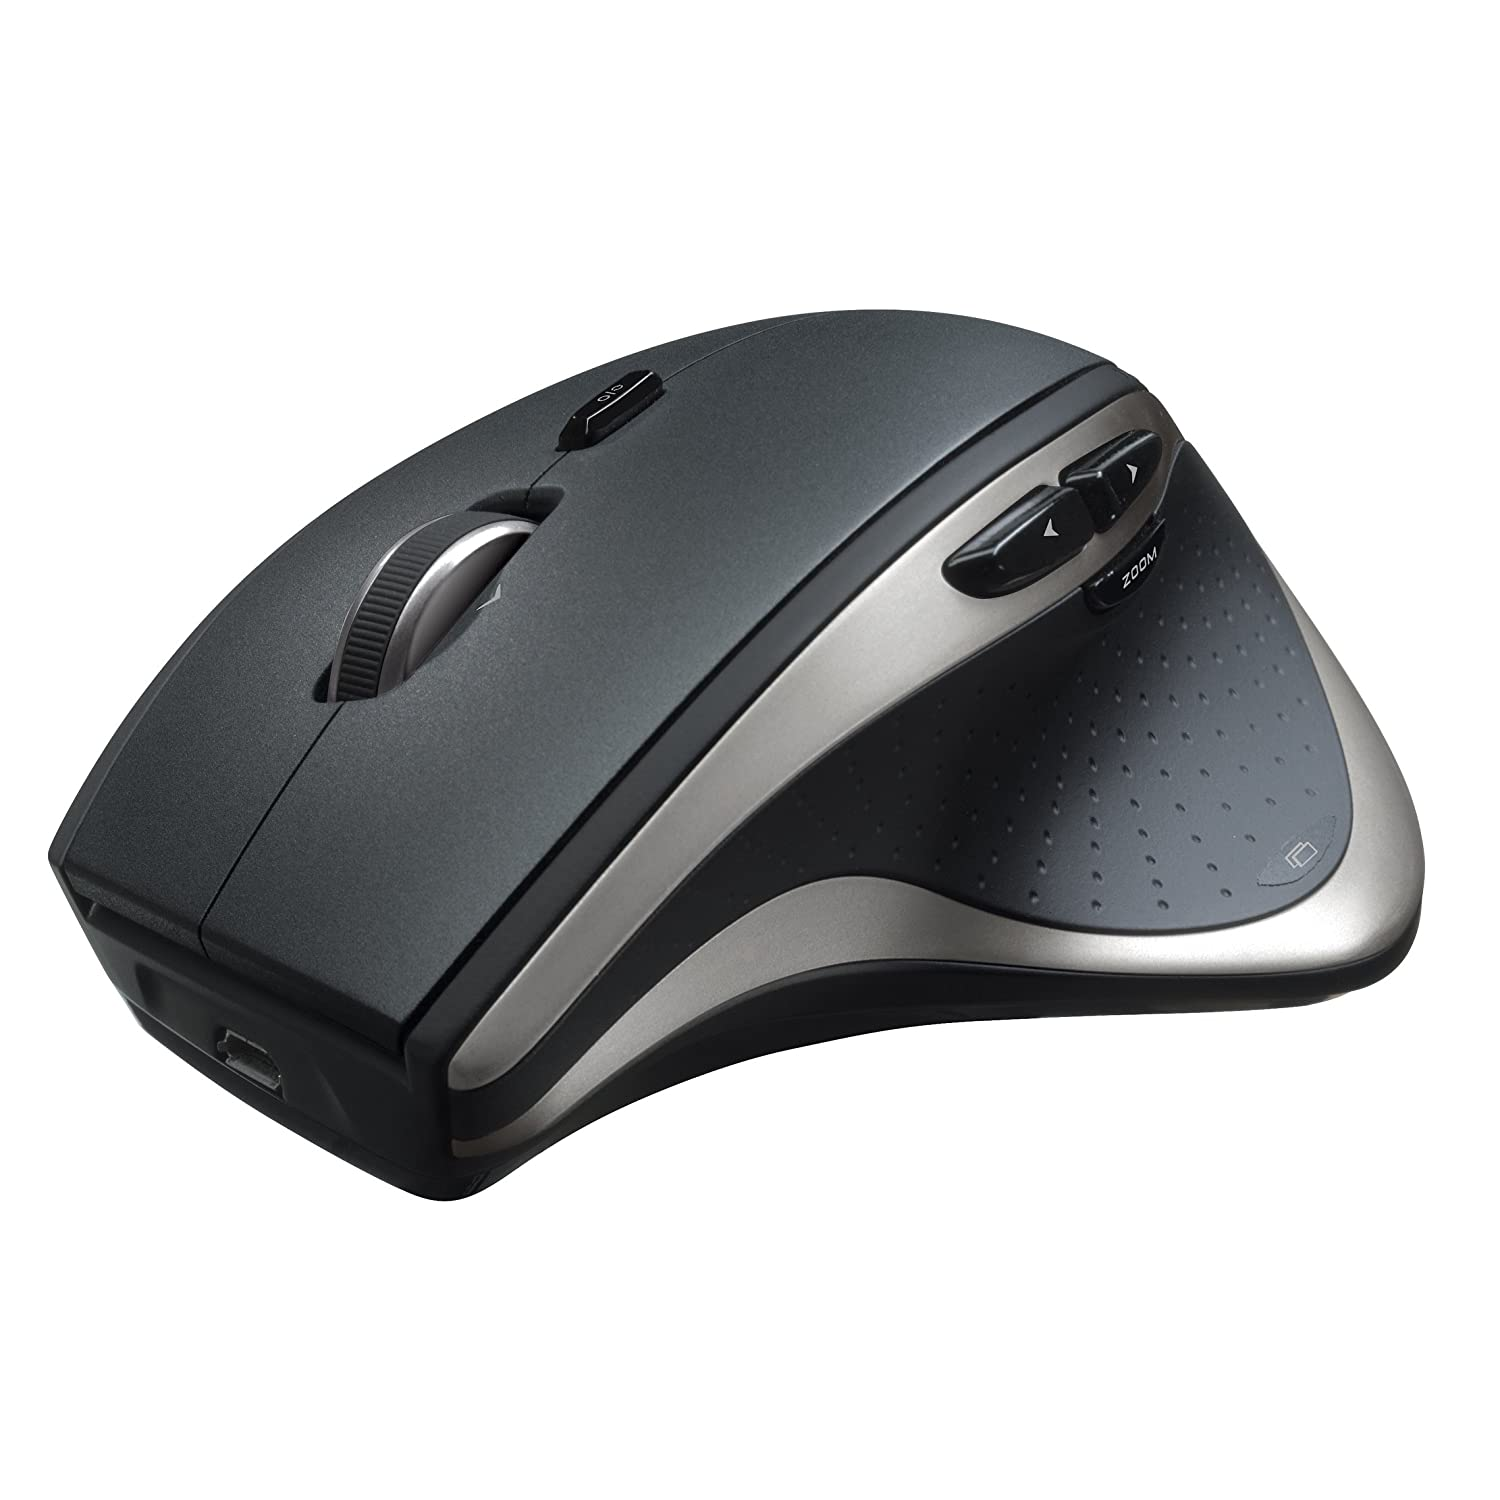 Chuột không dây Logitech Wireless Performance Mouse MX for PC and Mac. E24h. vn